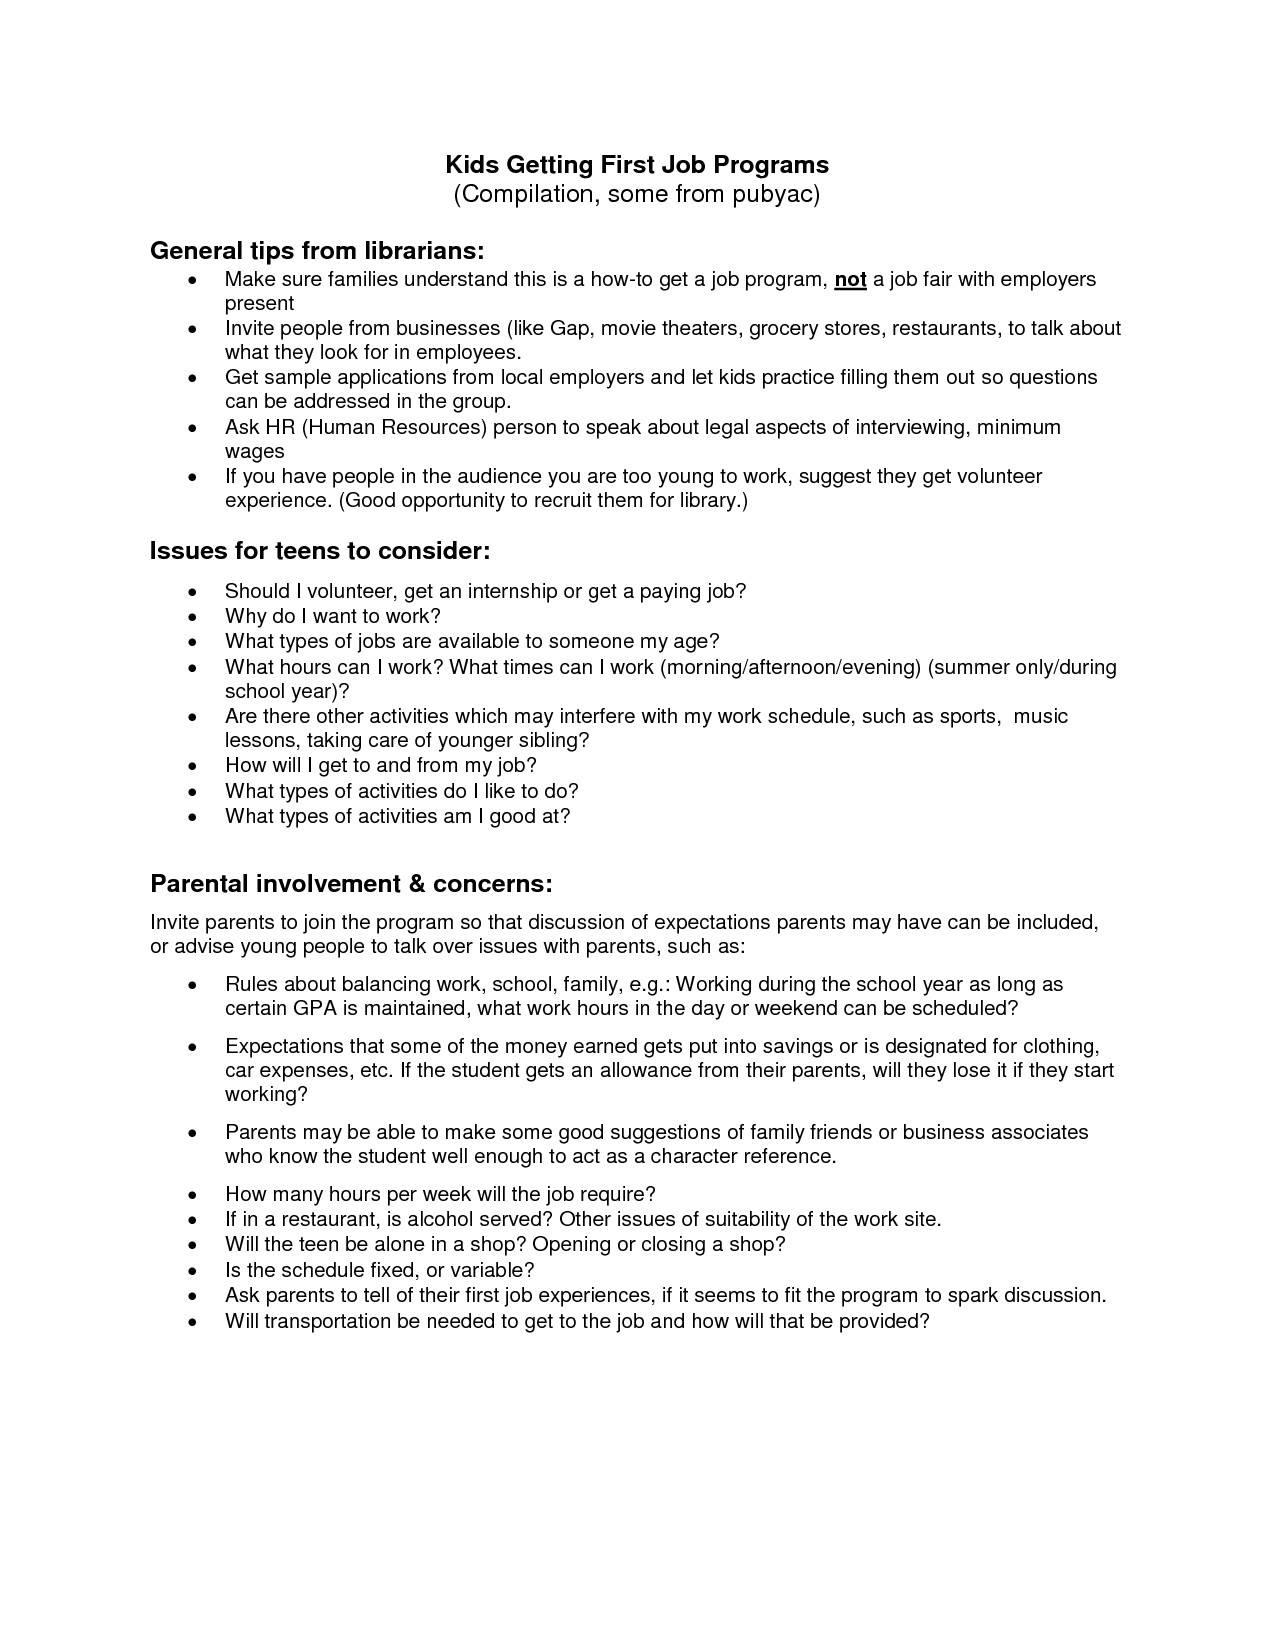 How to Make A Resume for First Job Template First Job Resume Template Health Symptoms and Cure Com